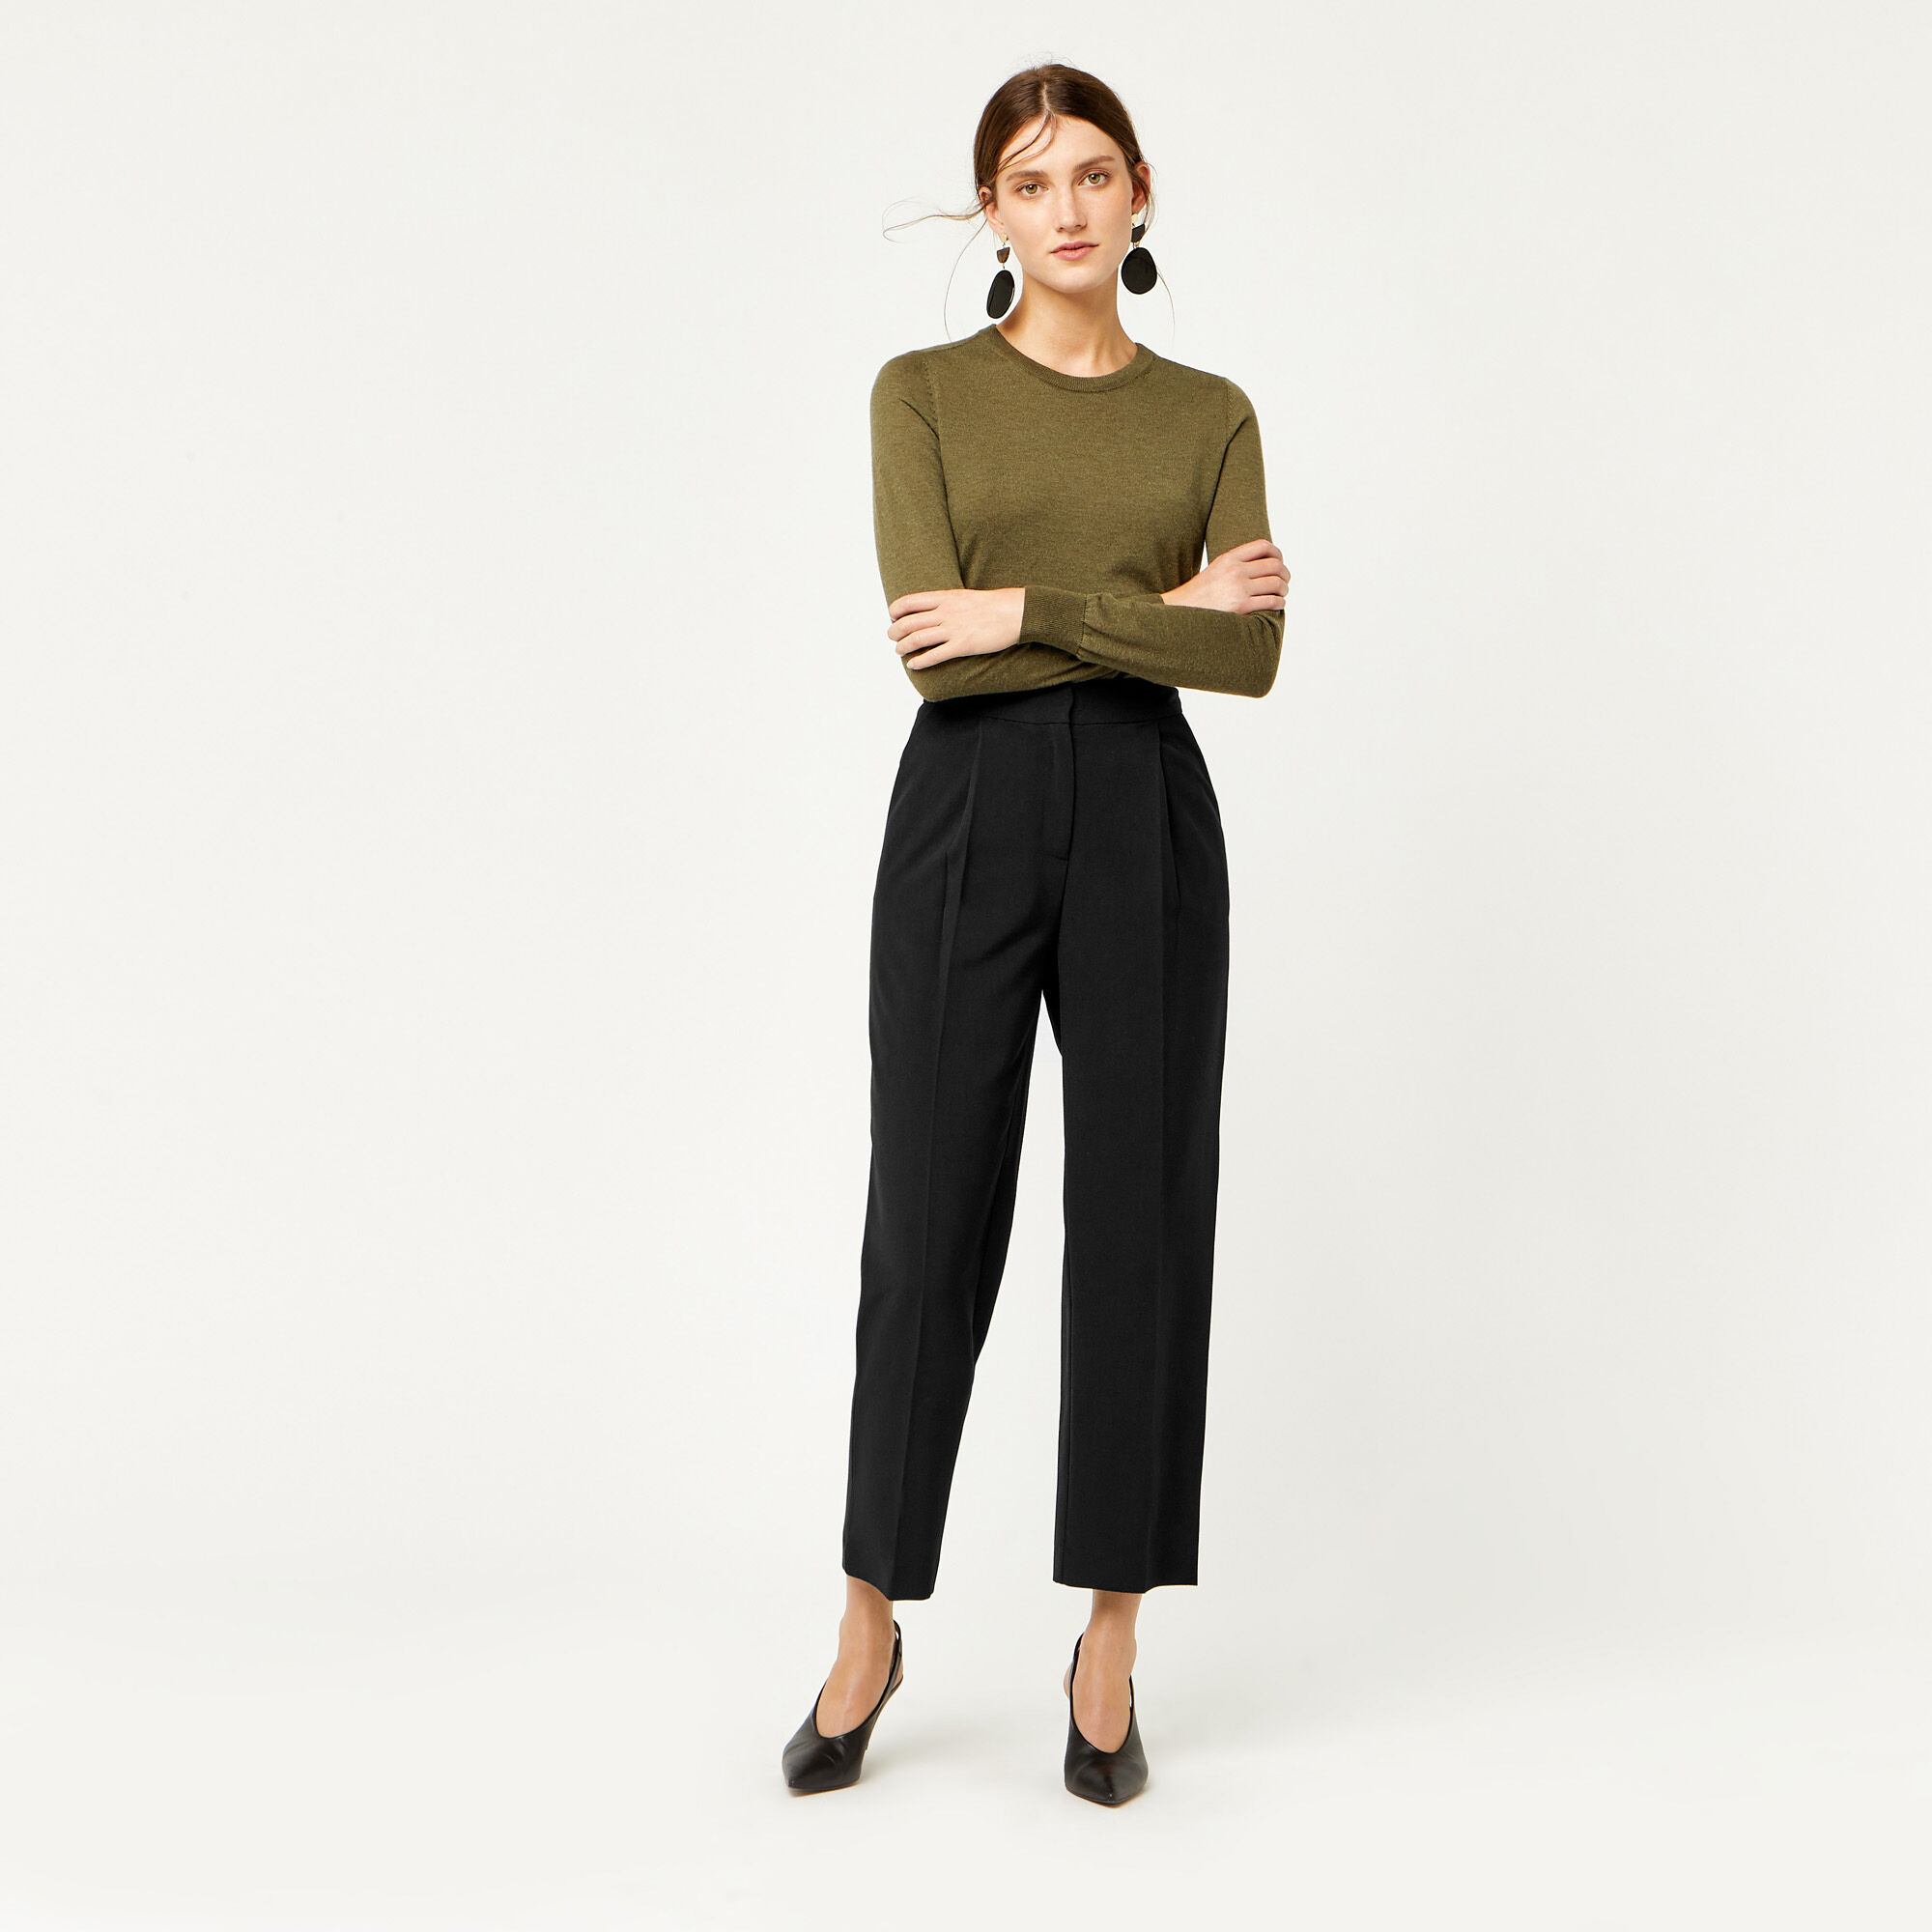 Warehouse, PLAIN PEG TROUSER Black 1